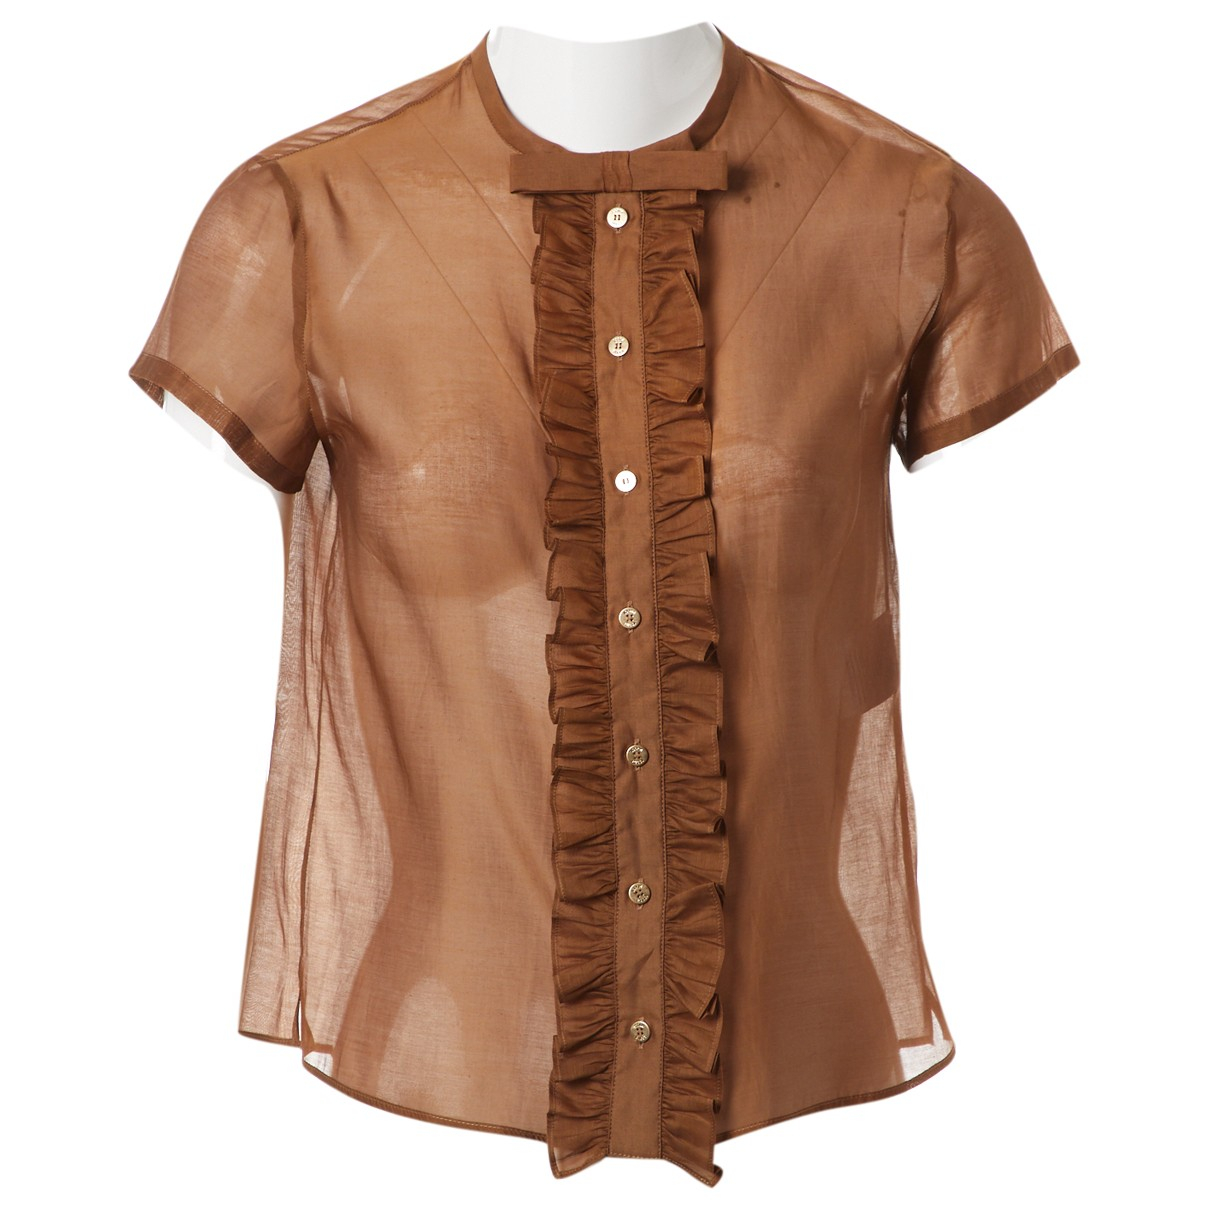 Emilio Pucci \N Brown Cotton  top for Women 38 IT